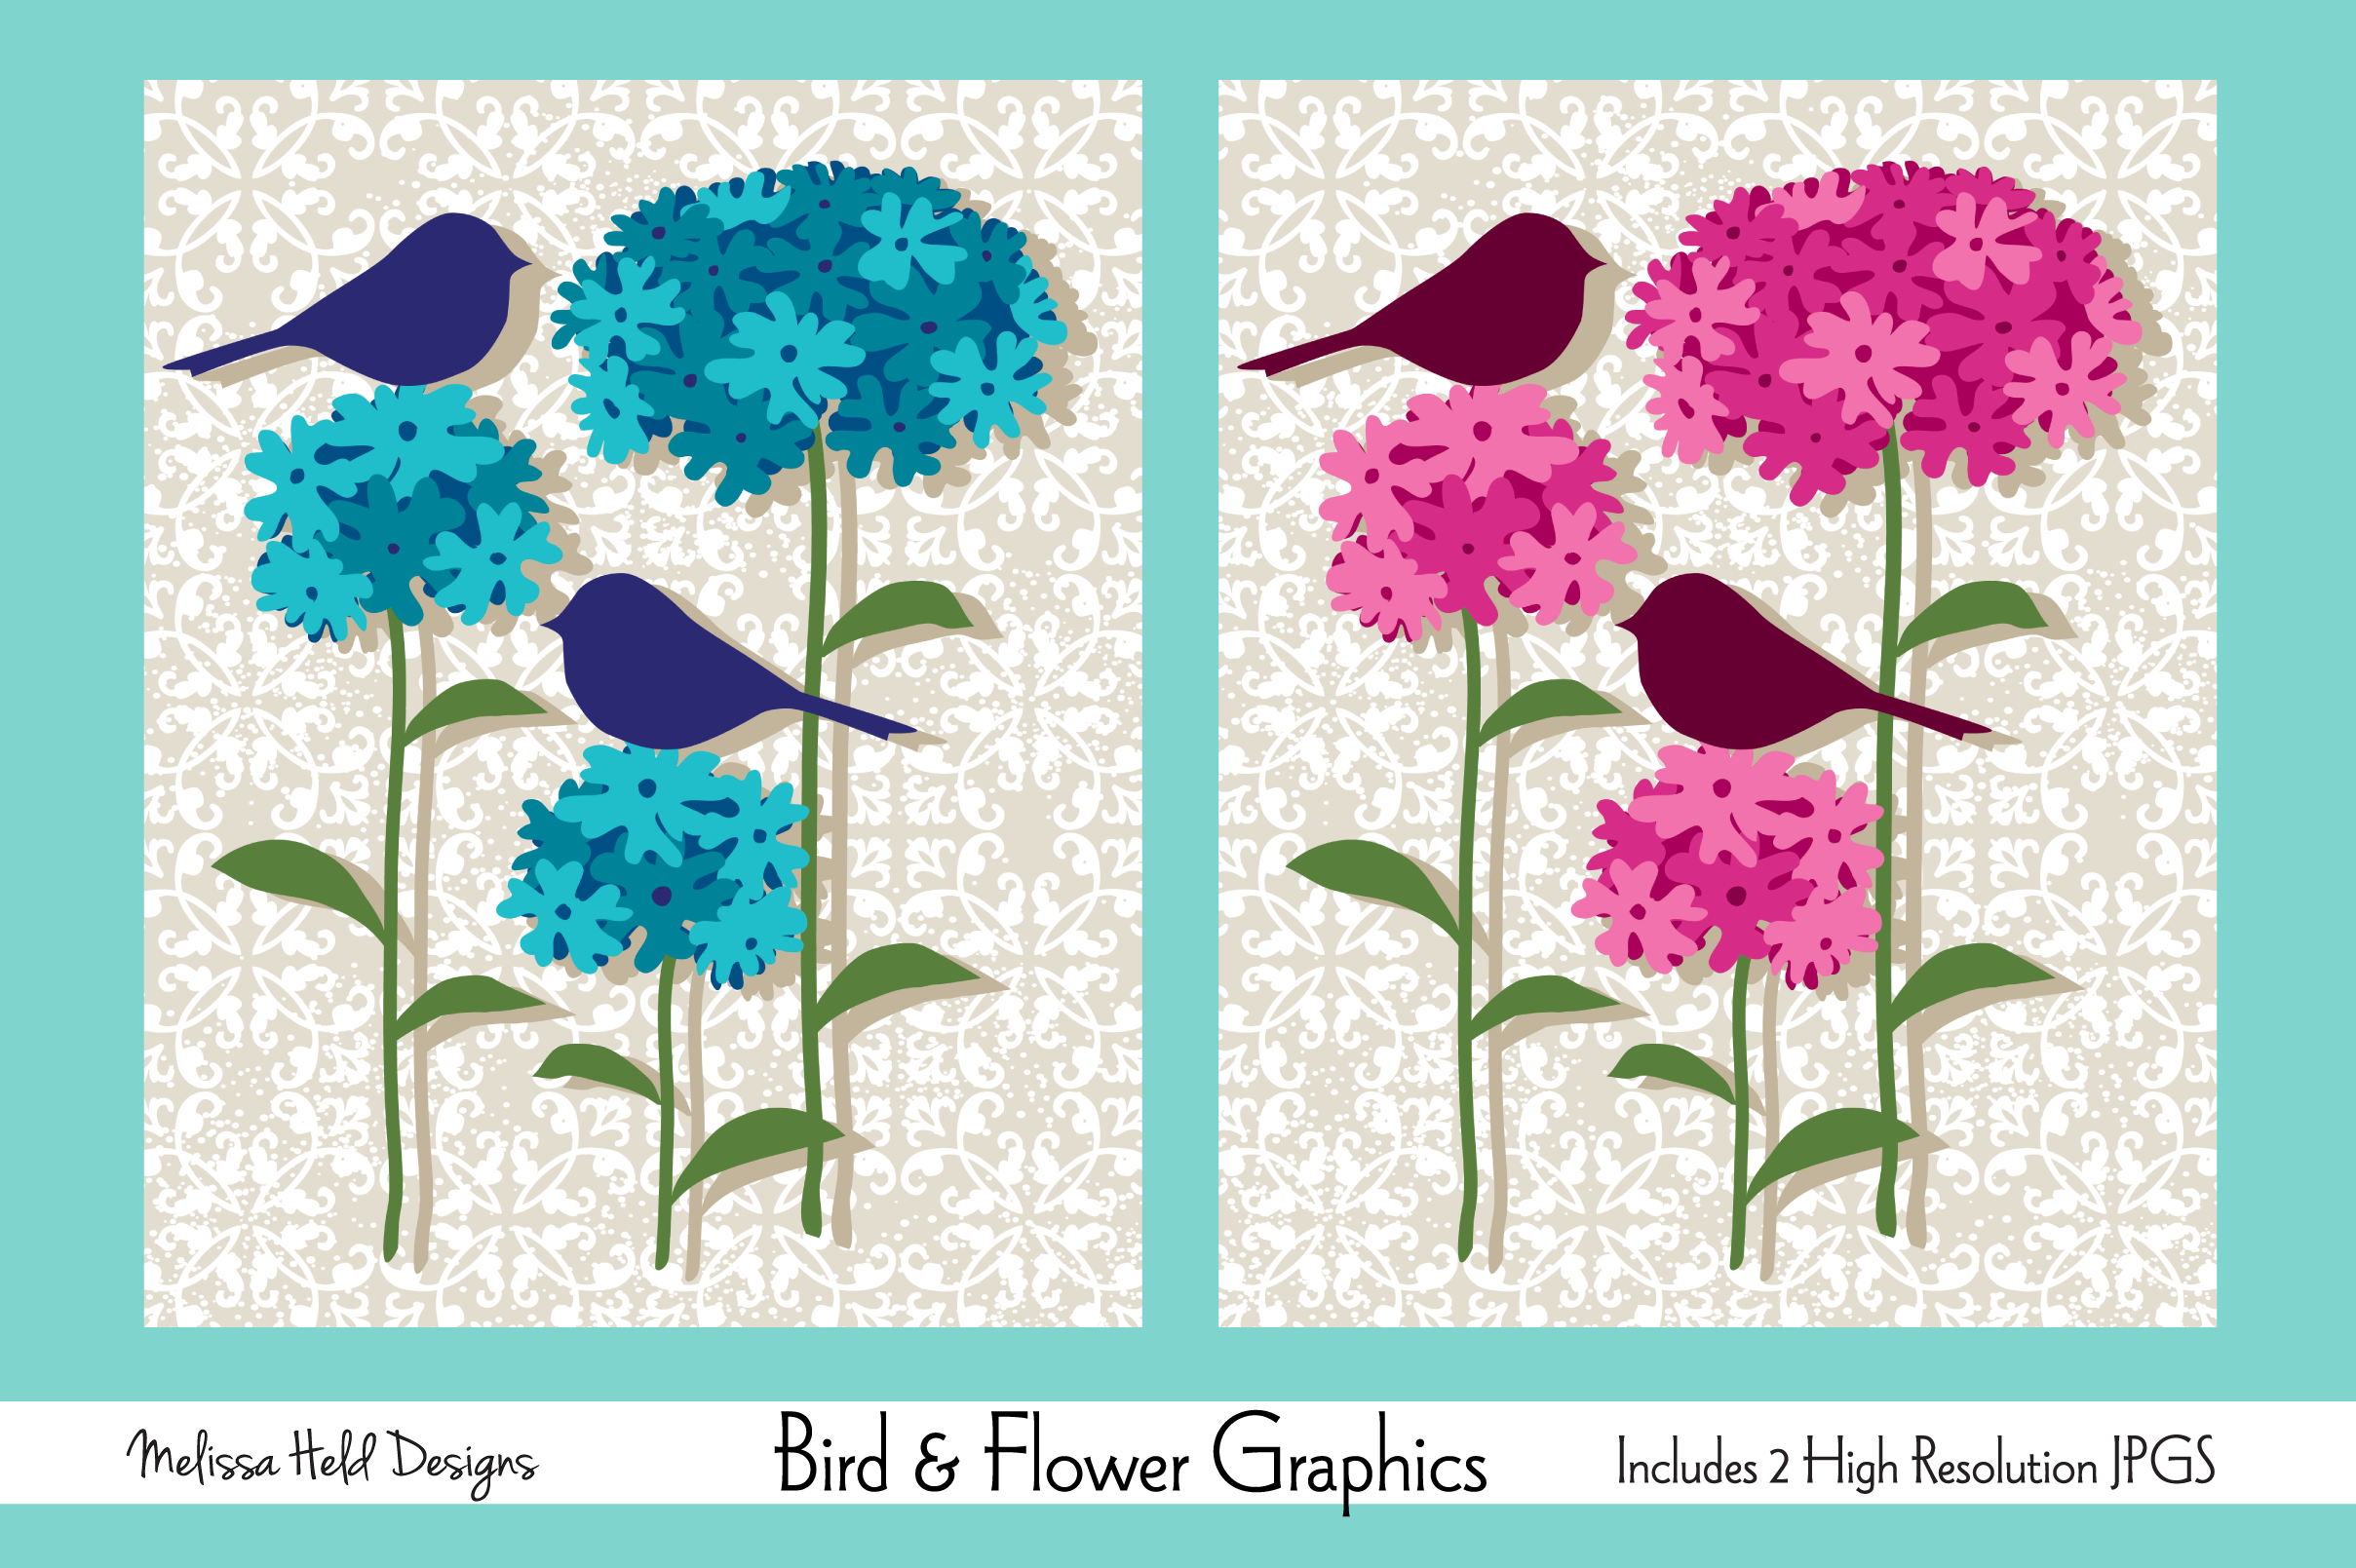 Download Free Bird And Flower Graphics Graphic By Melissa Held Designs for Cricut Explore, Silhouette and other cutting machines.